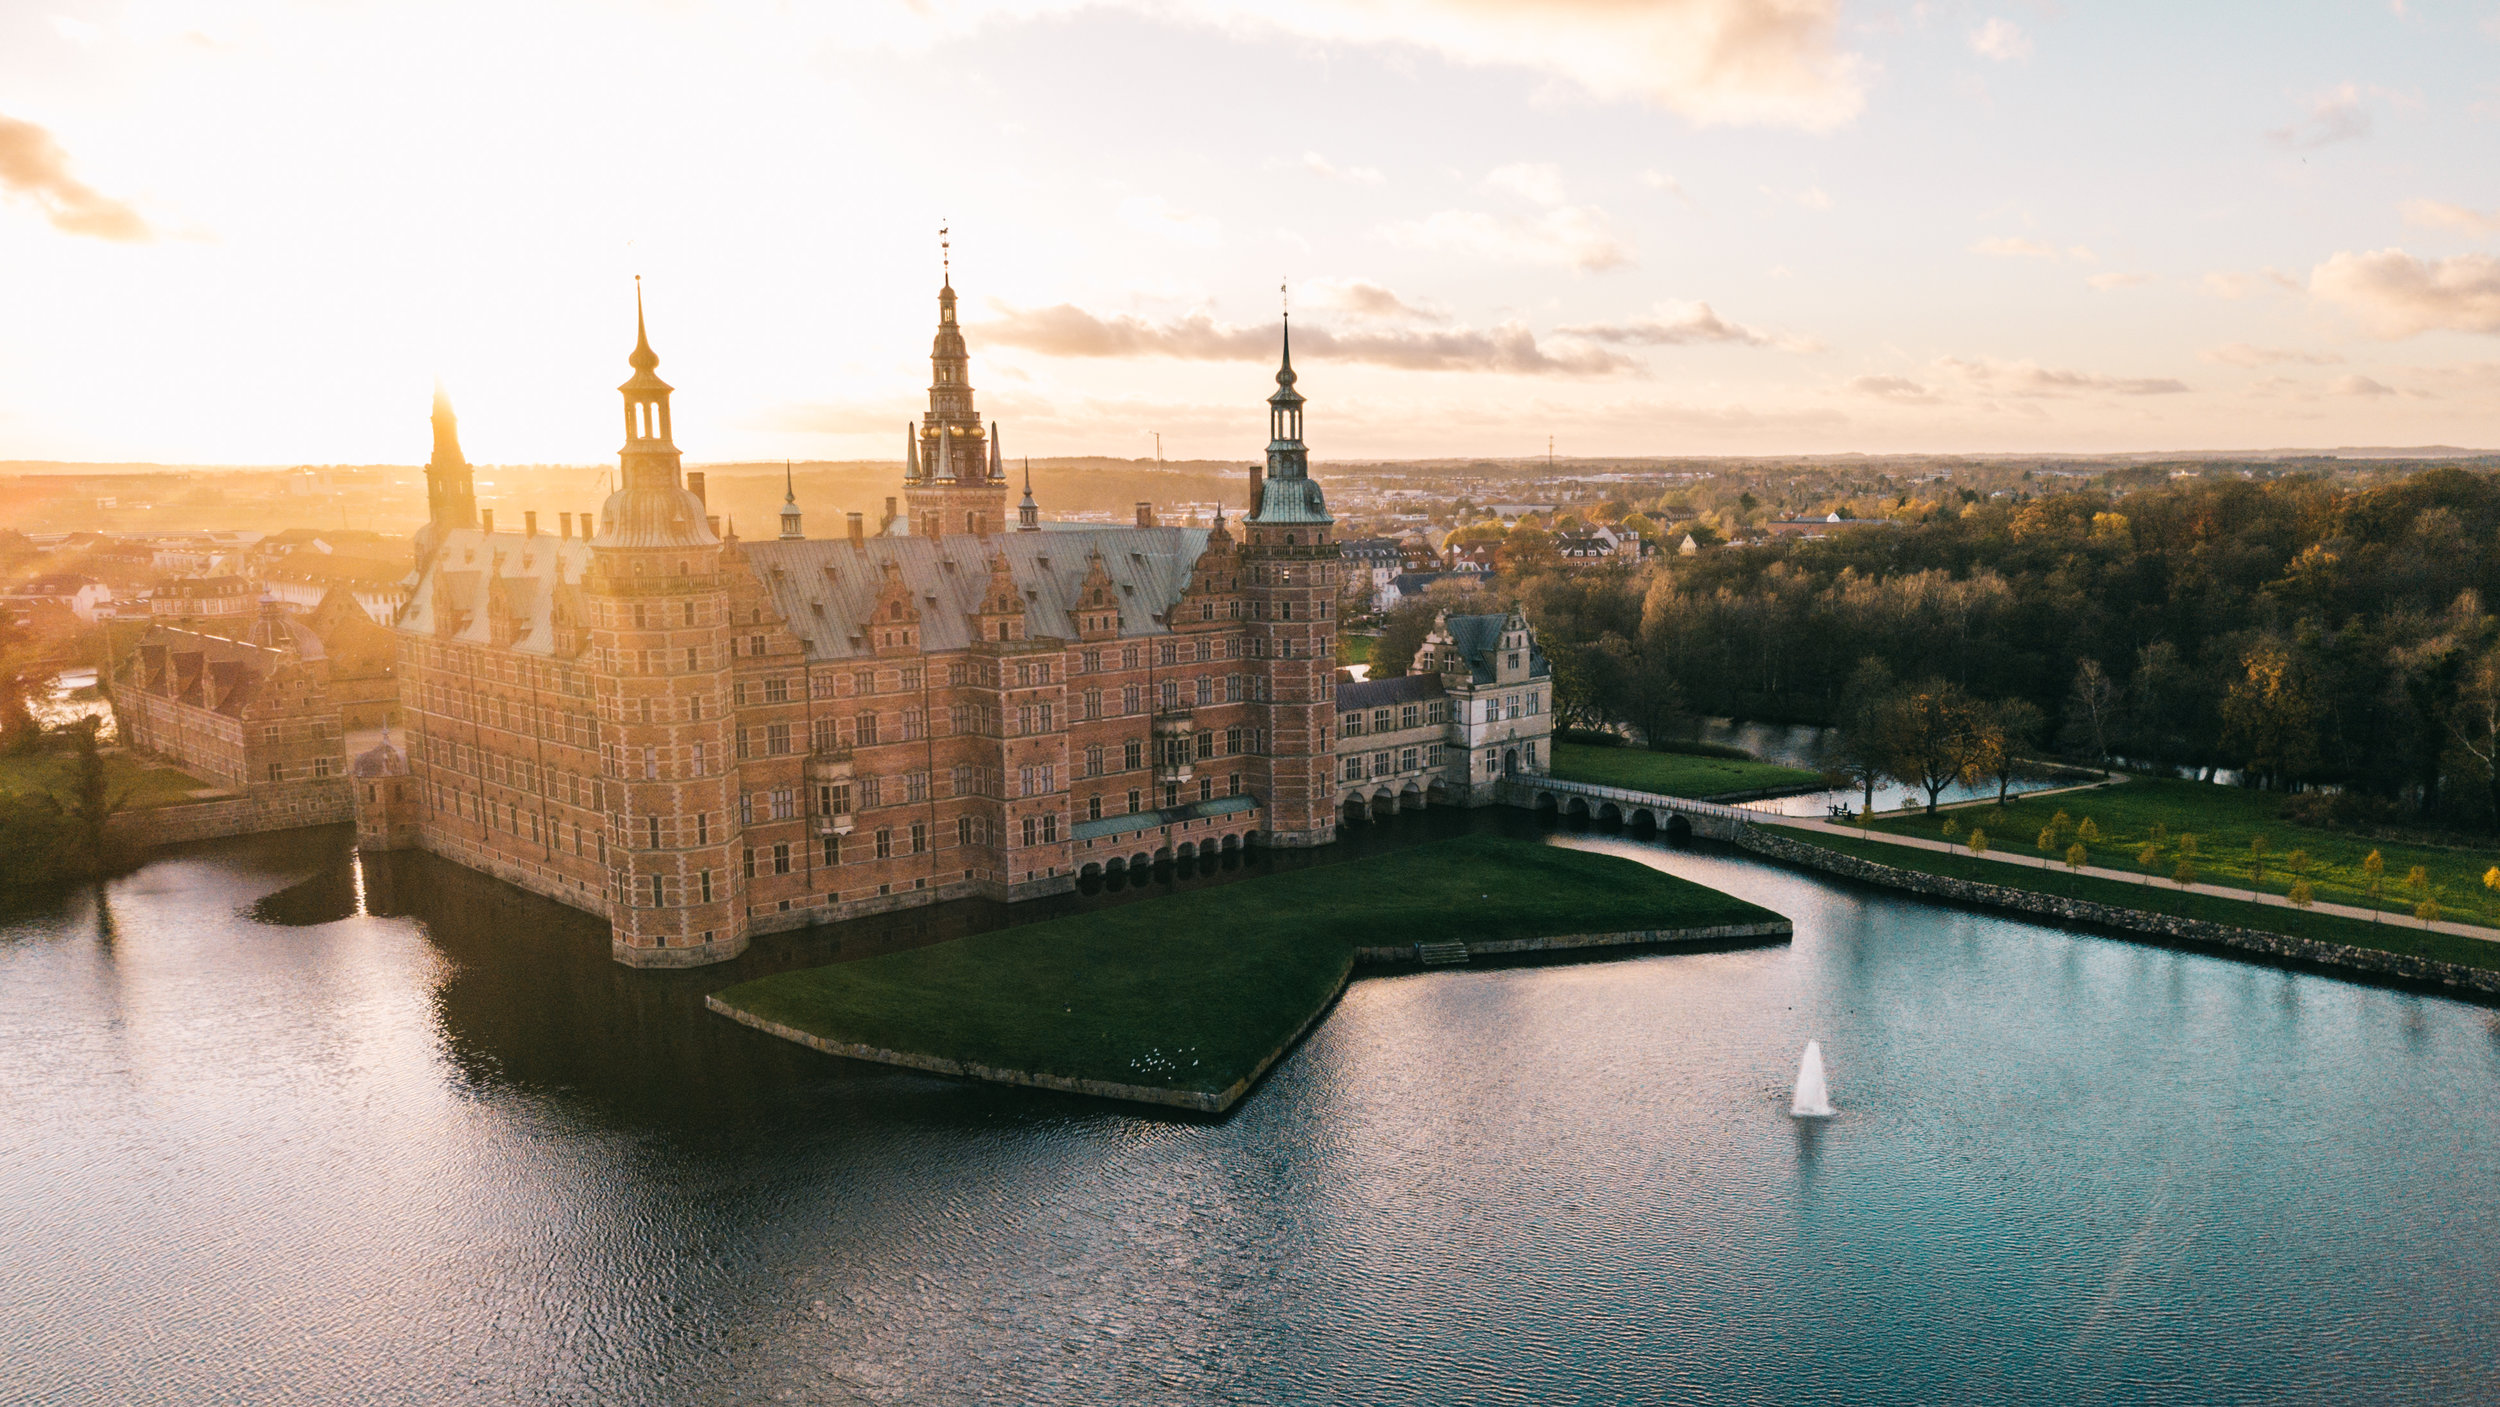 The palace as seen from above the castle lake.